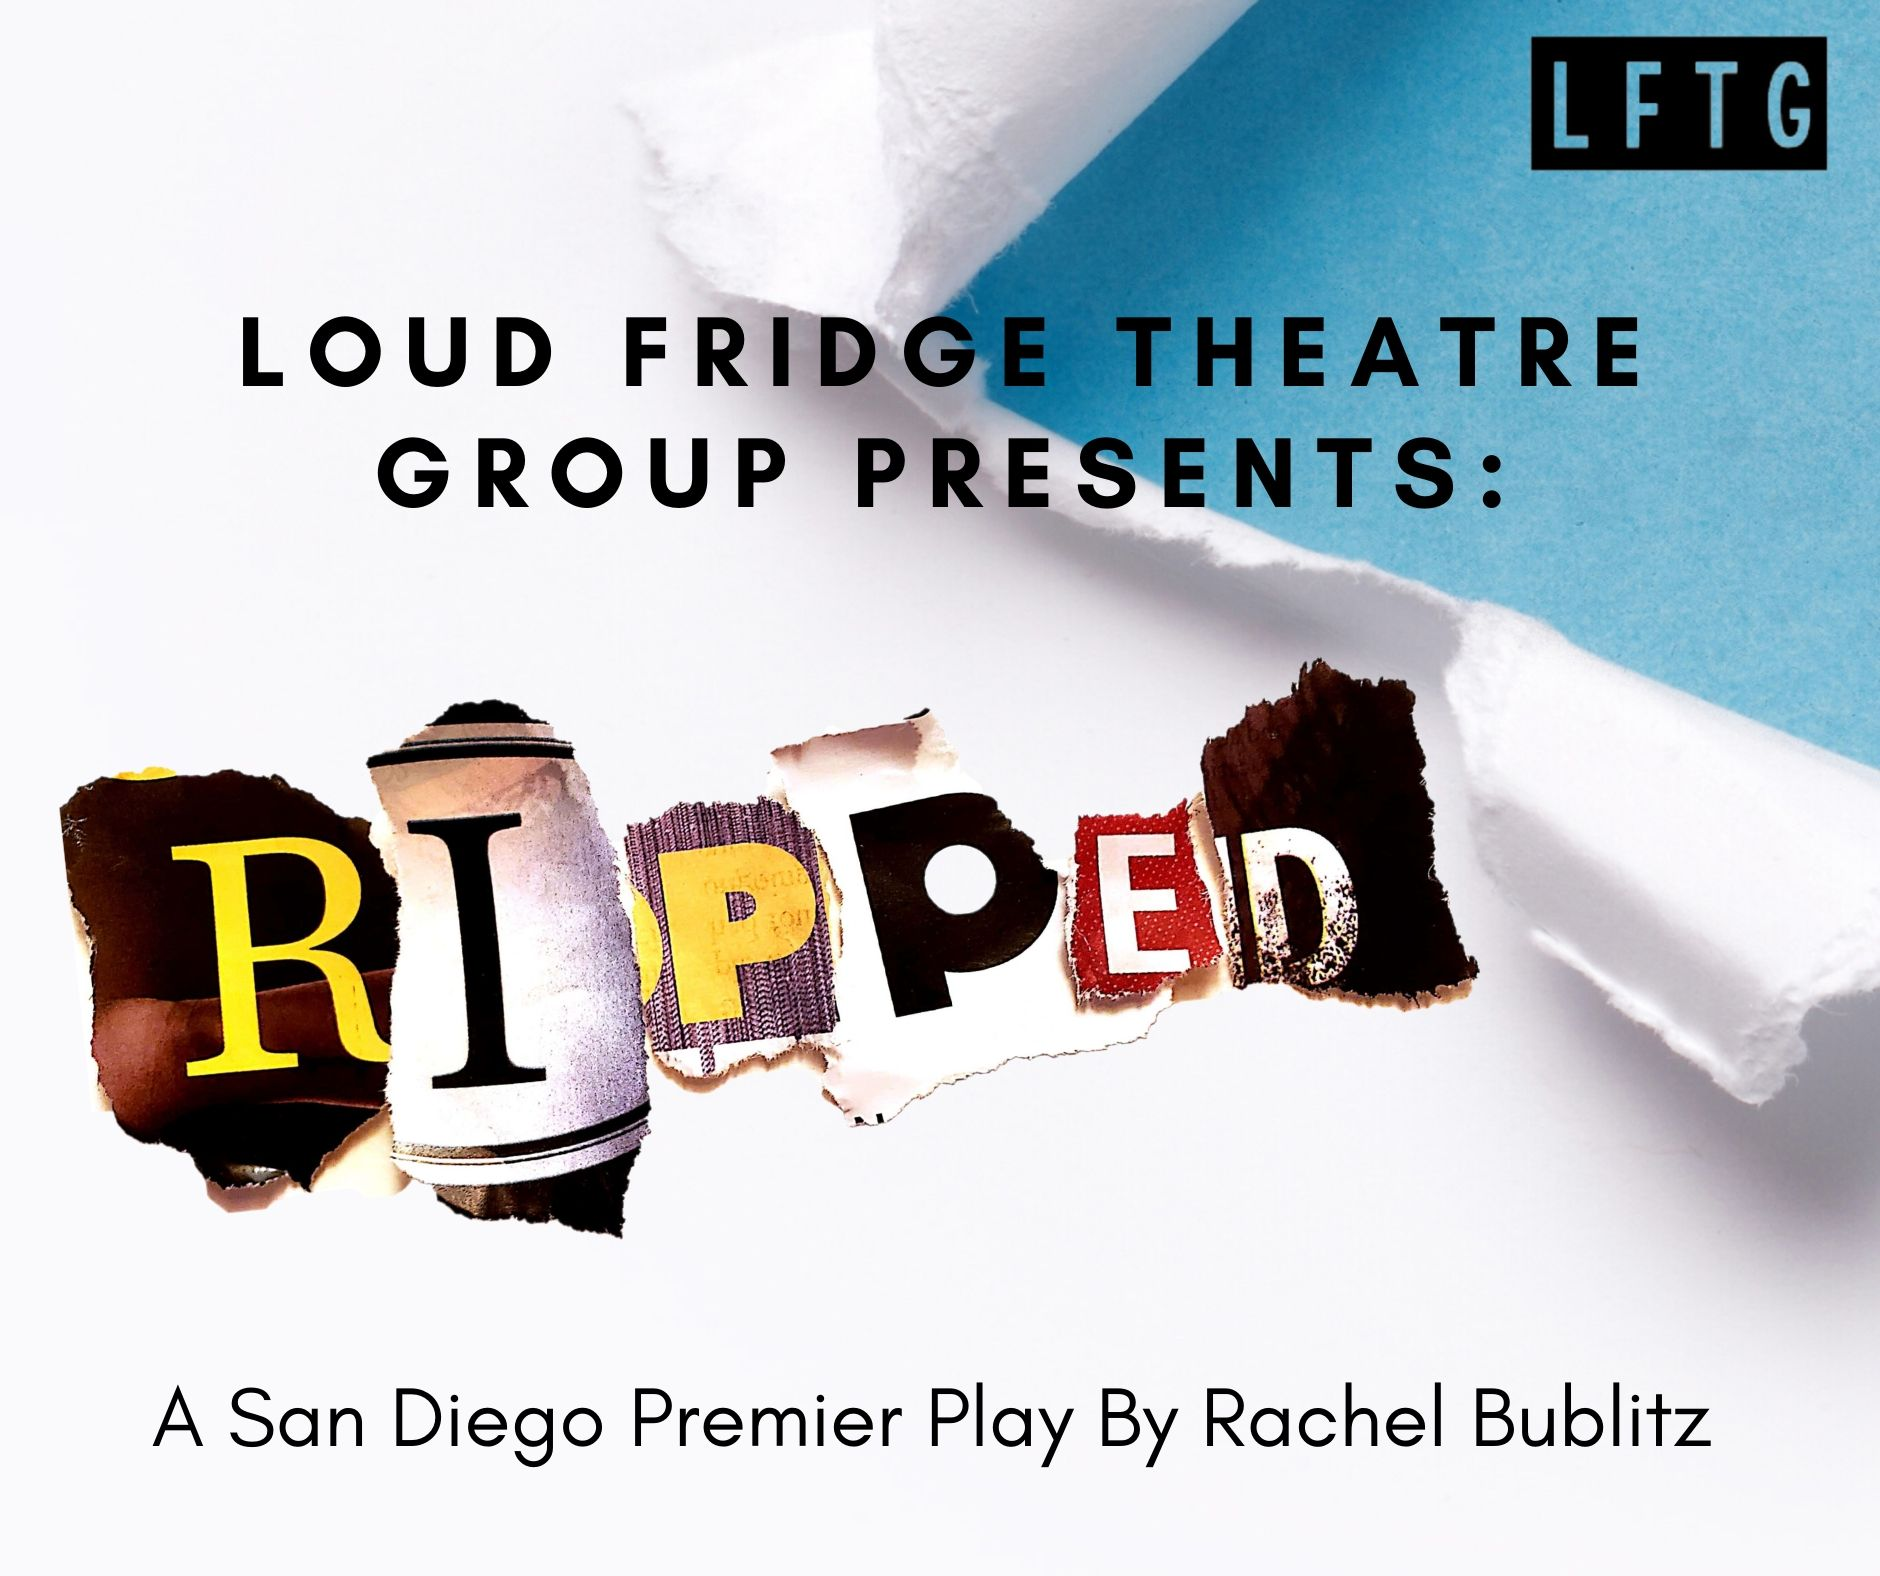 Postcard for RIPPED at Loud Fridge Theatre Group.